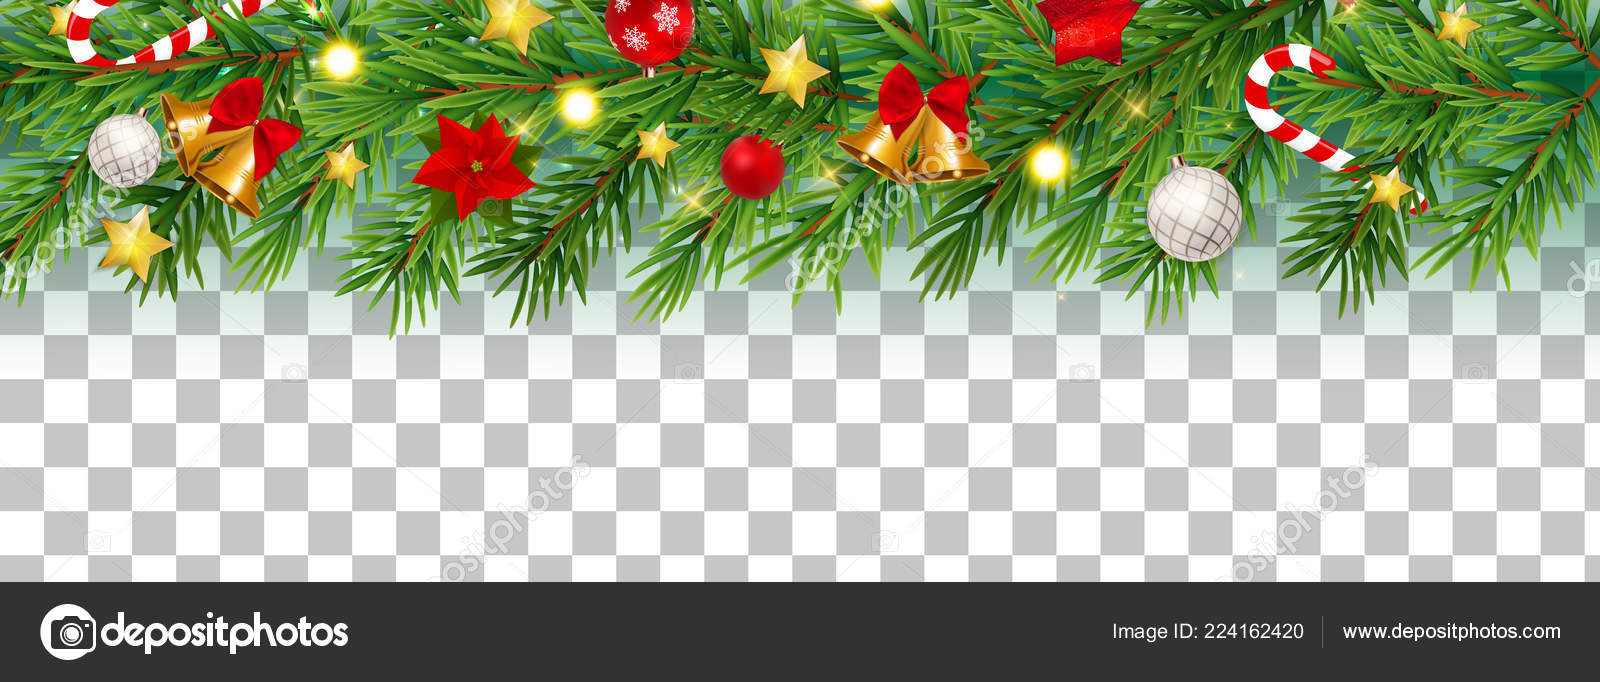 Christmas Transparent Background.Abstract Holiday New Year And Merry Christmas Border On